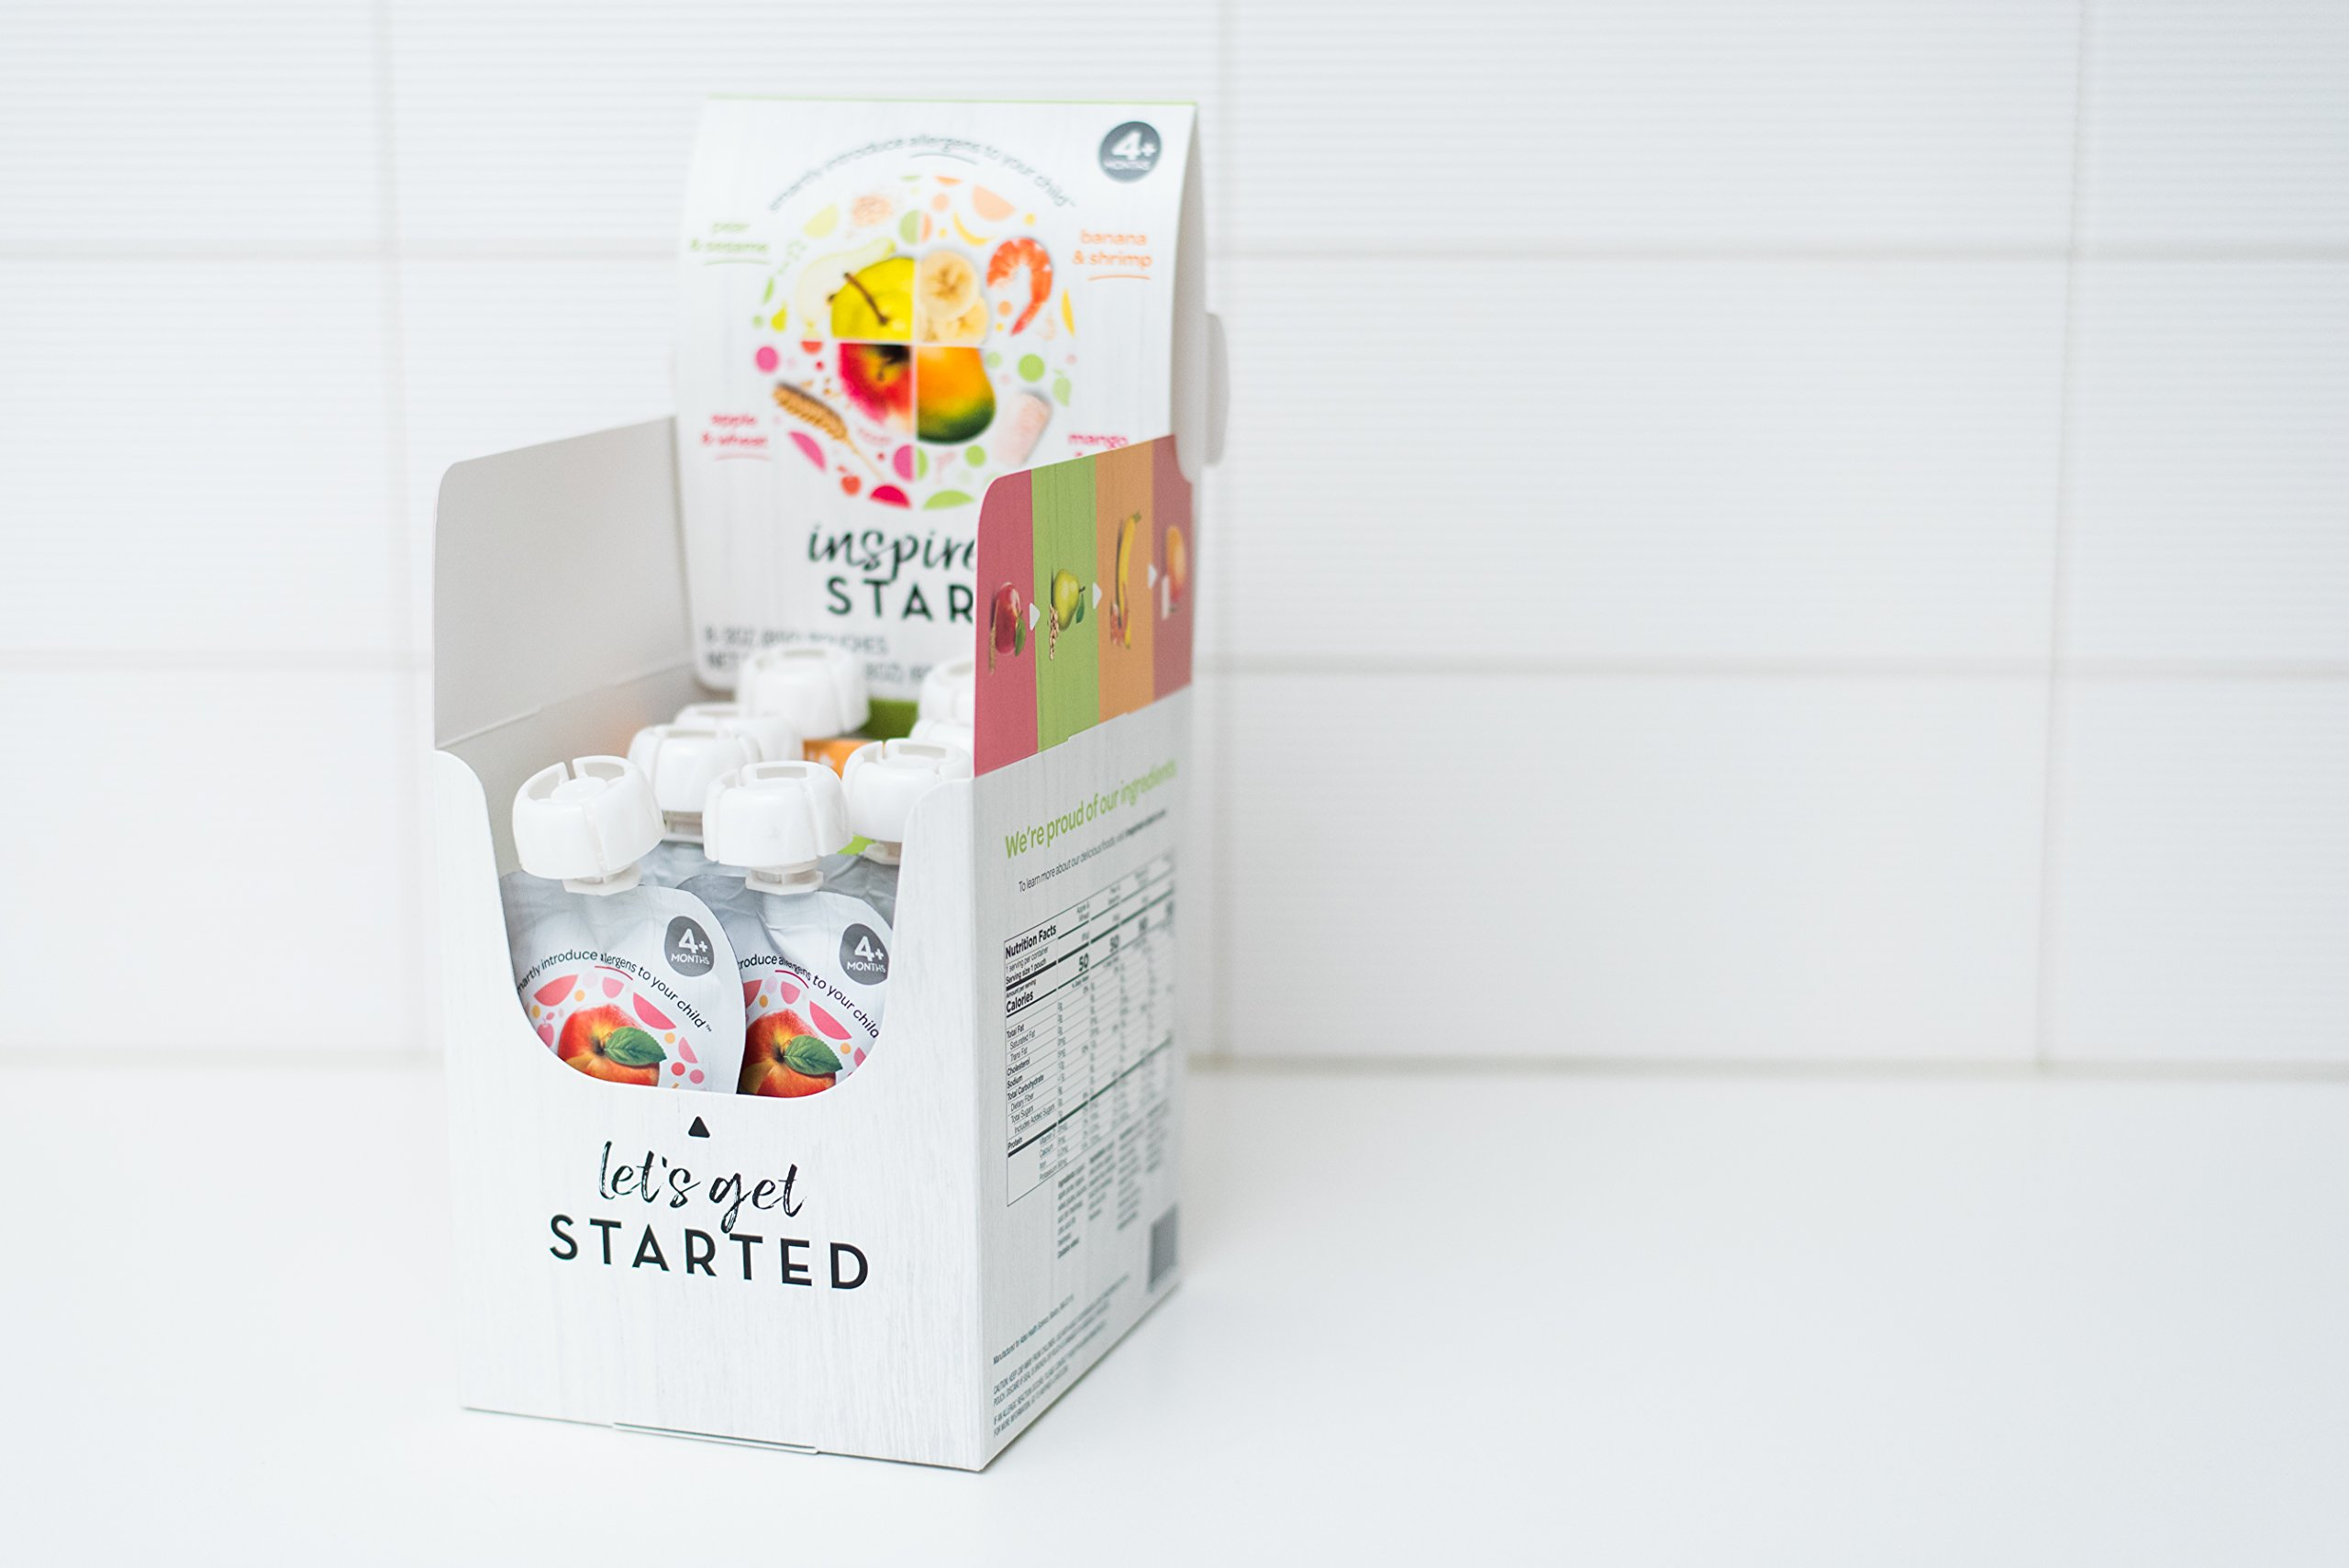 Early Allergen Introduction Baby Food: Inspired Start Pack 2, 3 oz. (Pack of 8 baby food pouches) - Non-GMO, include wheat, sesame, shrimp and cod in baby's diet by Inspired Start (Image #1)